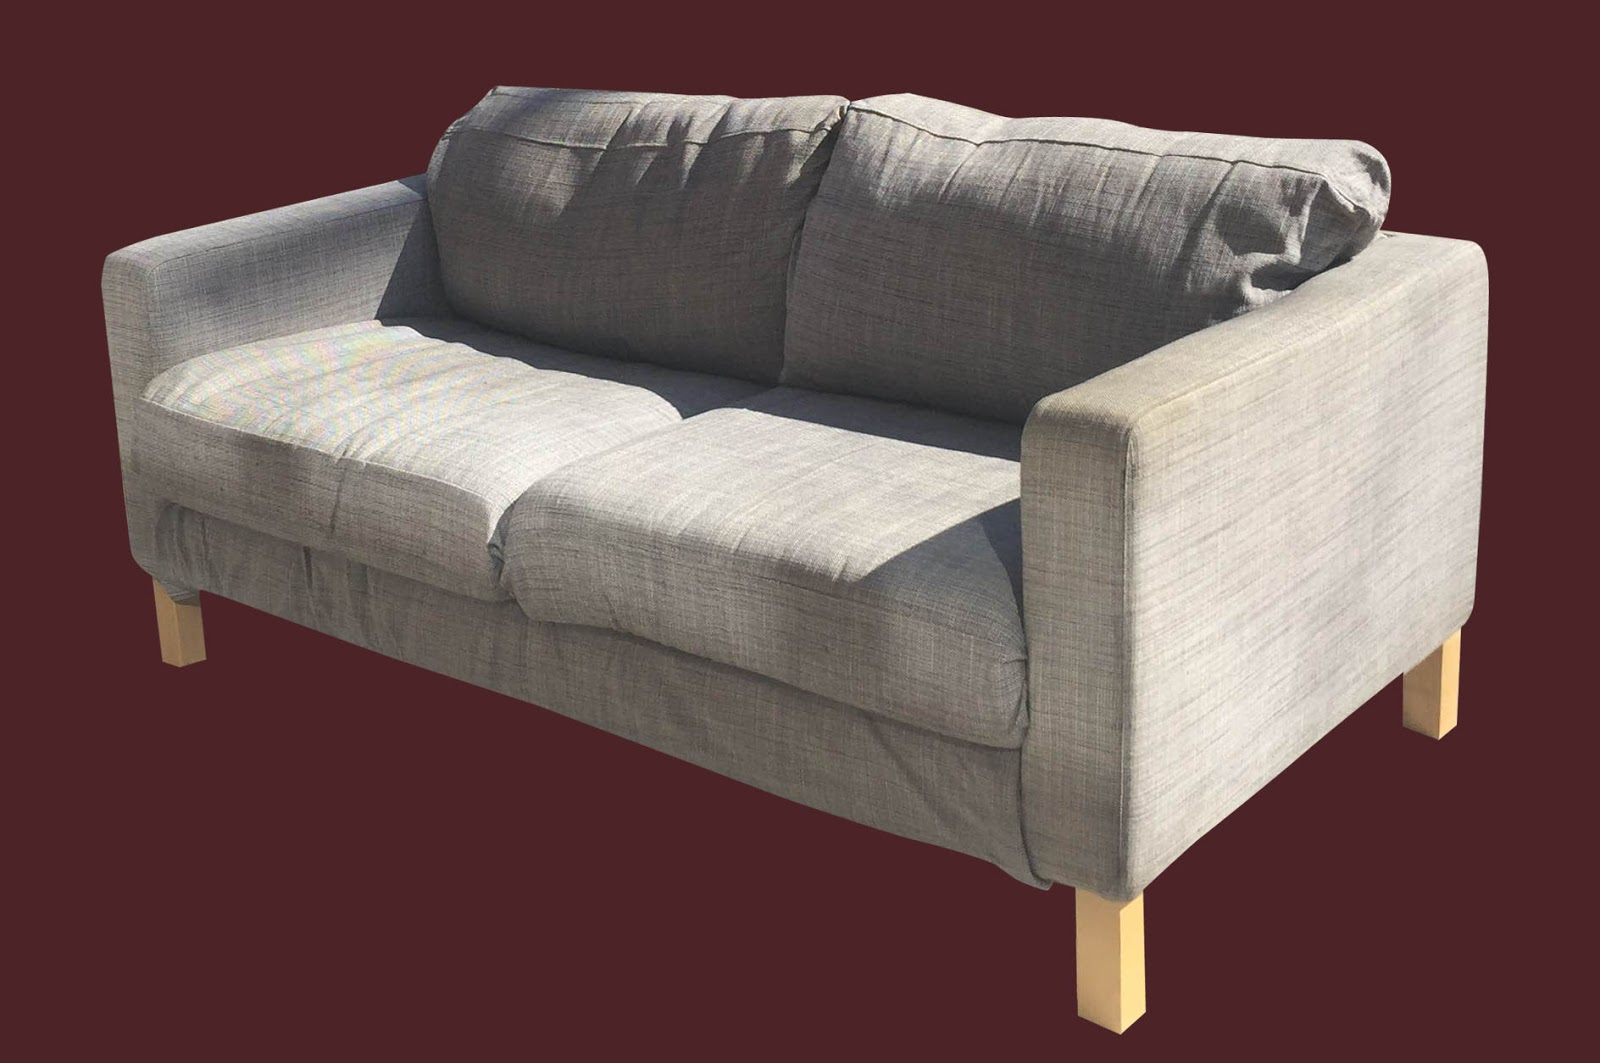 Uhuru furniture collectibles ikea loveseat 175 sold for Furniture that can be disassembled